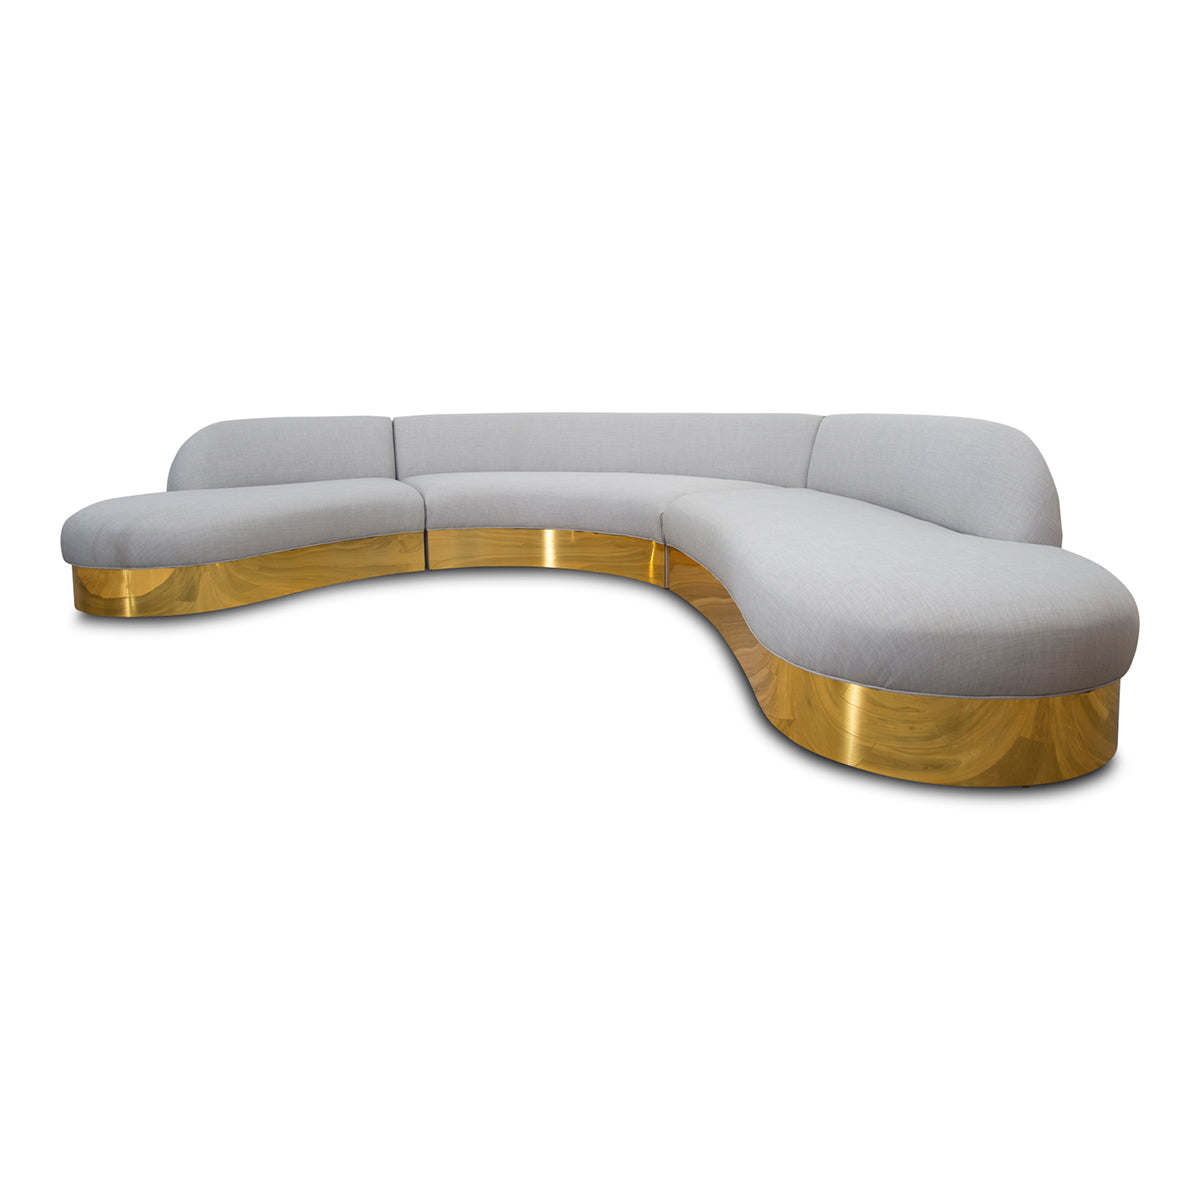 Biarritz Sectional in Linen - ModShop1.com